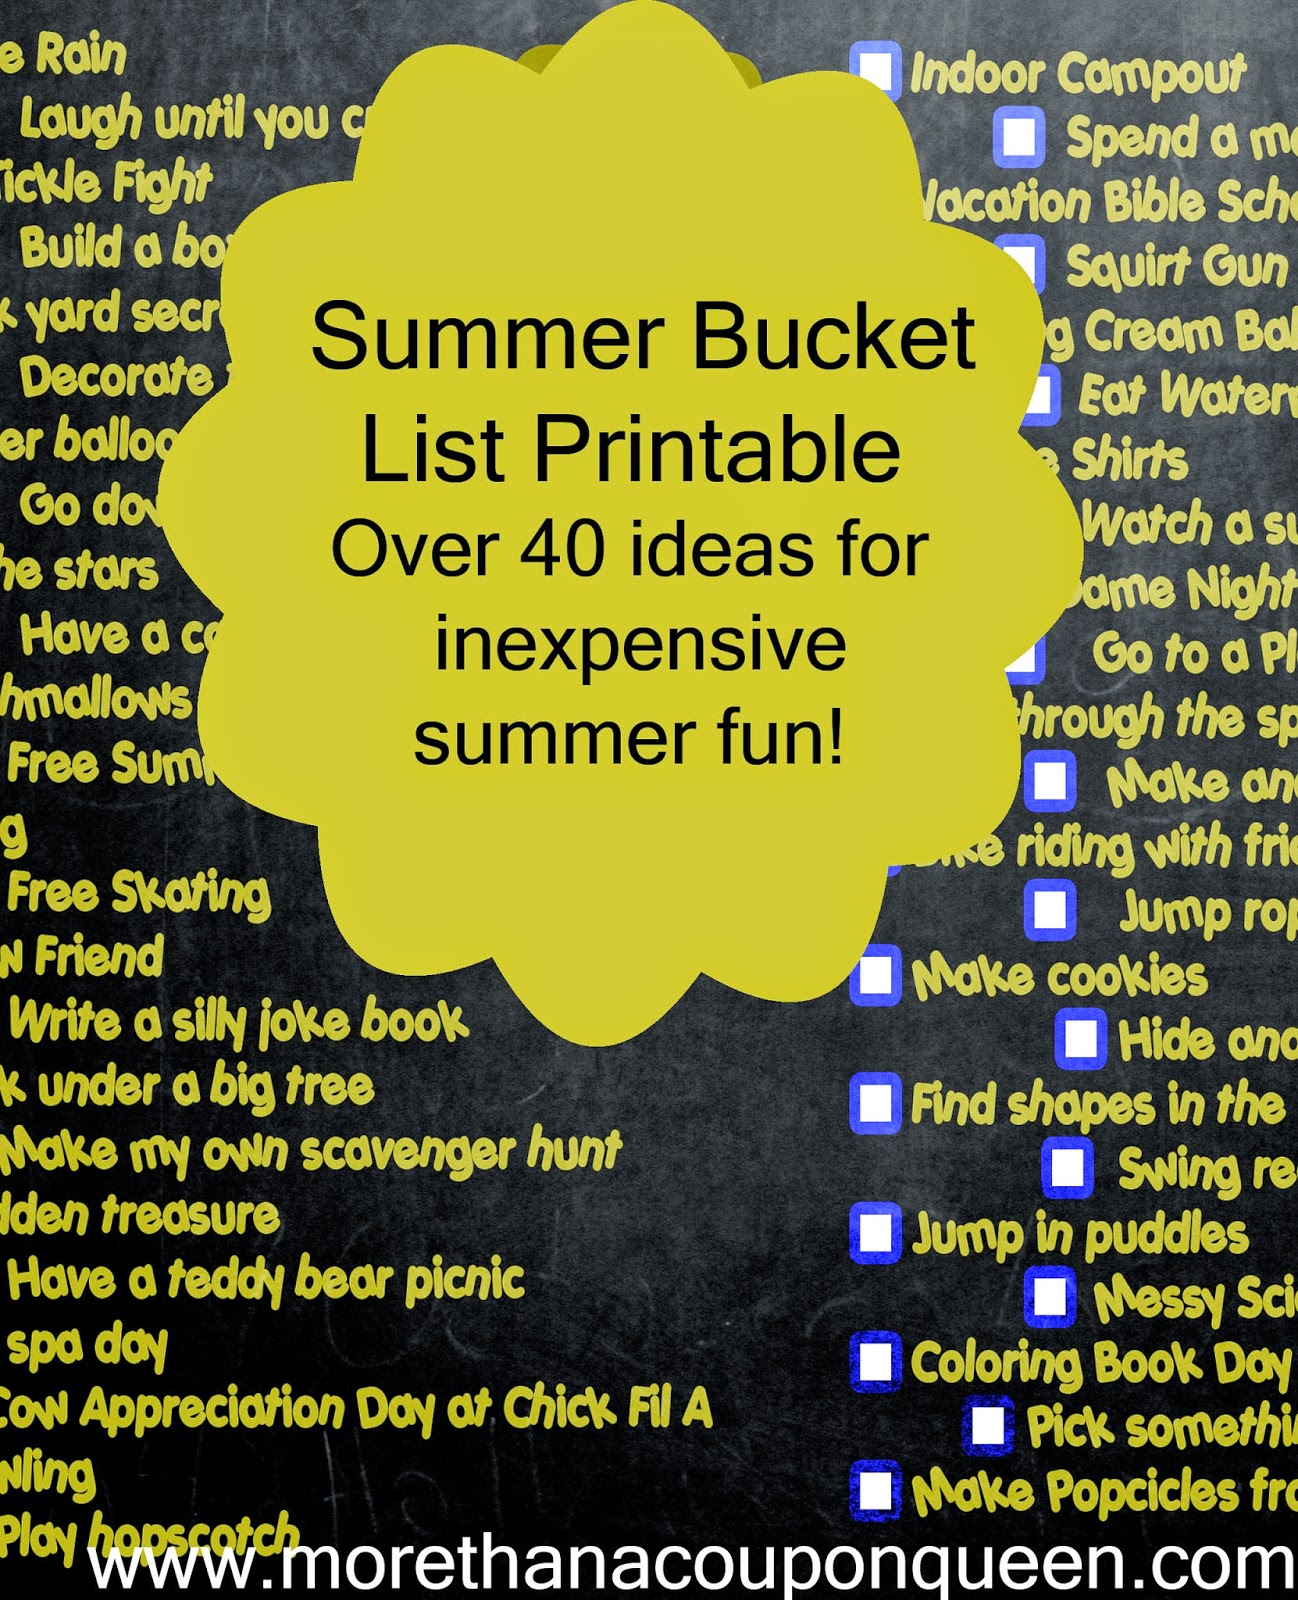 Summer is just around the corner and I am so excited. We have put together a bucket list of things we want to do this summer. However, money is tight so we don't want our list to be filled with things that cost a lot. I have put this together as a printable so that you can print it out if you need a low cost bucket list.